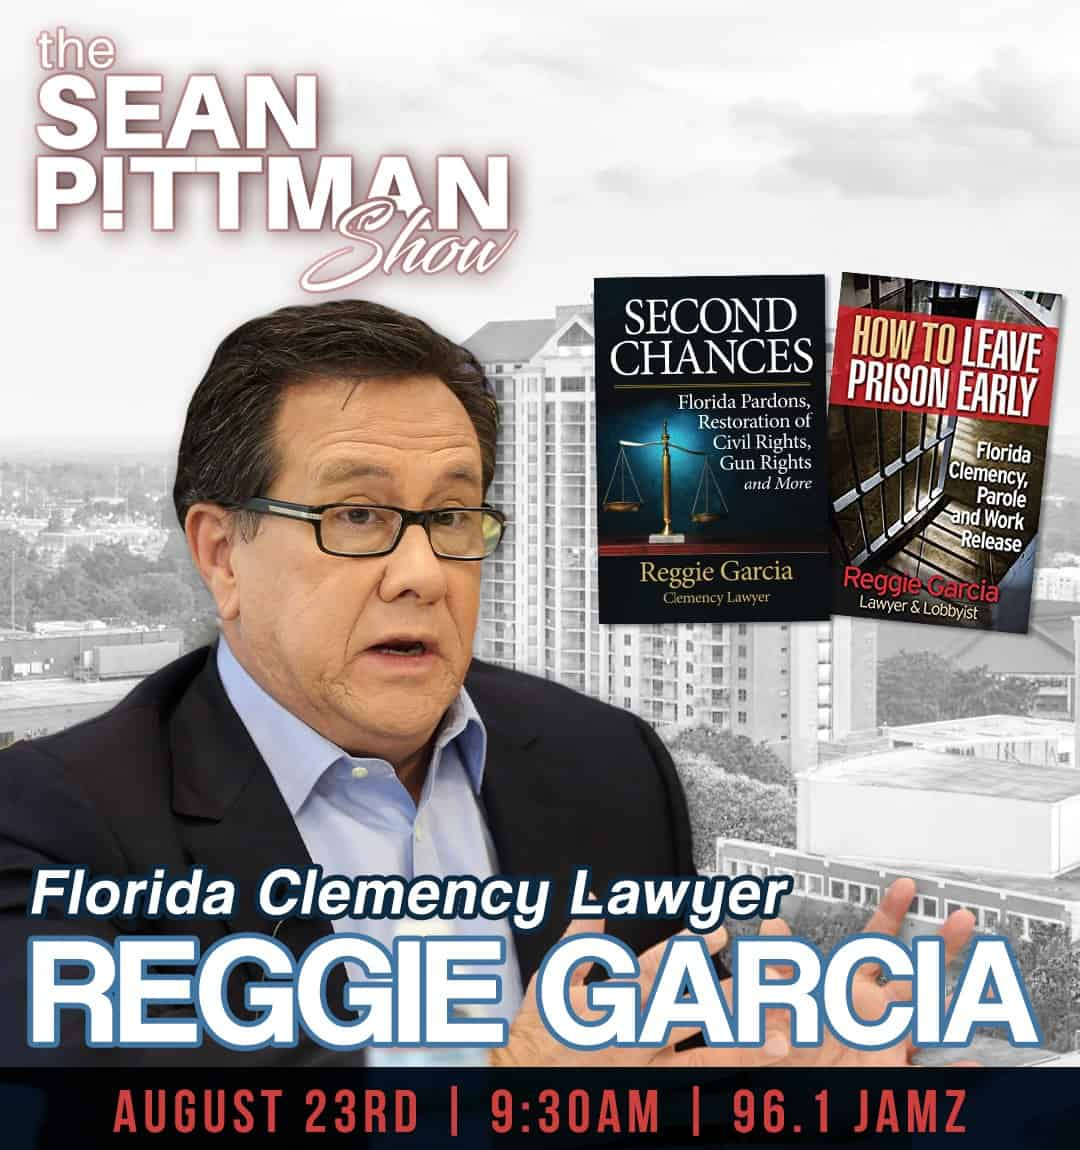 Florida Clemency Attorney called into The Sean Pittman Show